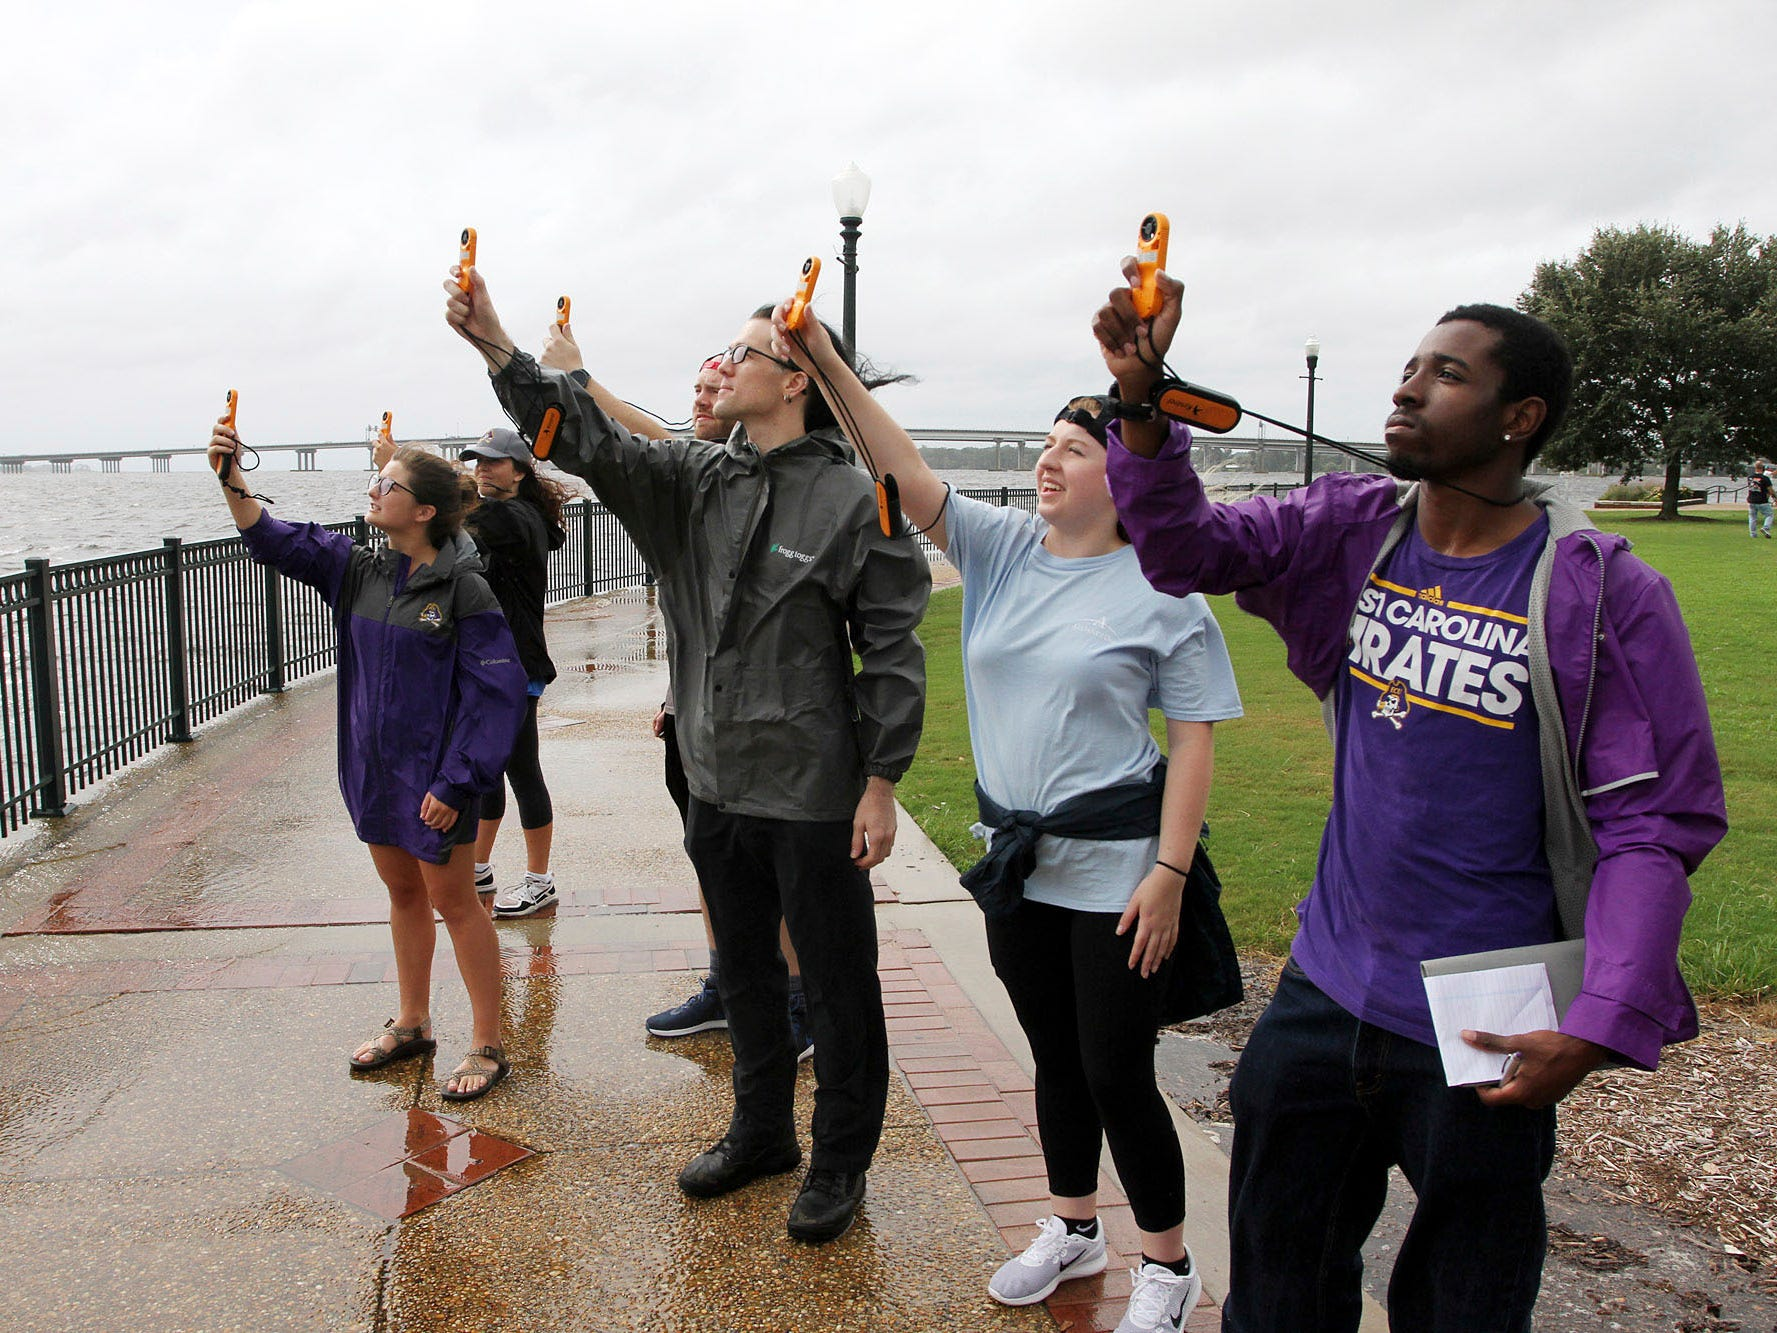 Students Samantha Levine, Megan Boles, Aaron Newns, Dana Pawlowski and Isaiah Goham, of East Carolina University's Coastal Storms class, use anemometers to measure wind speeds at Union Point Park in New Bern, N.C. Sept. 13, 2018.